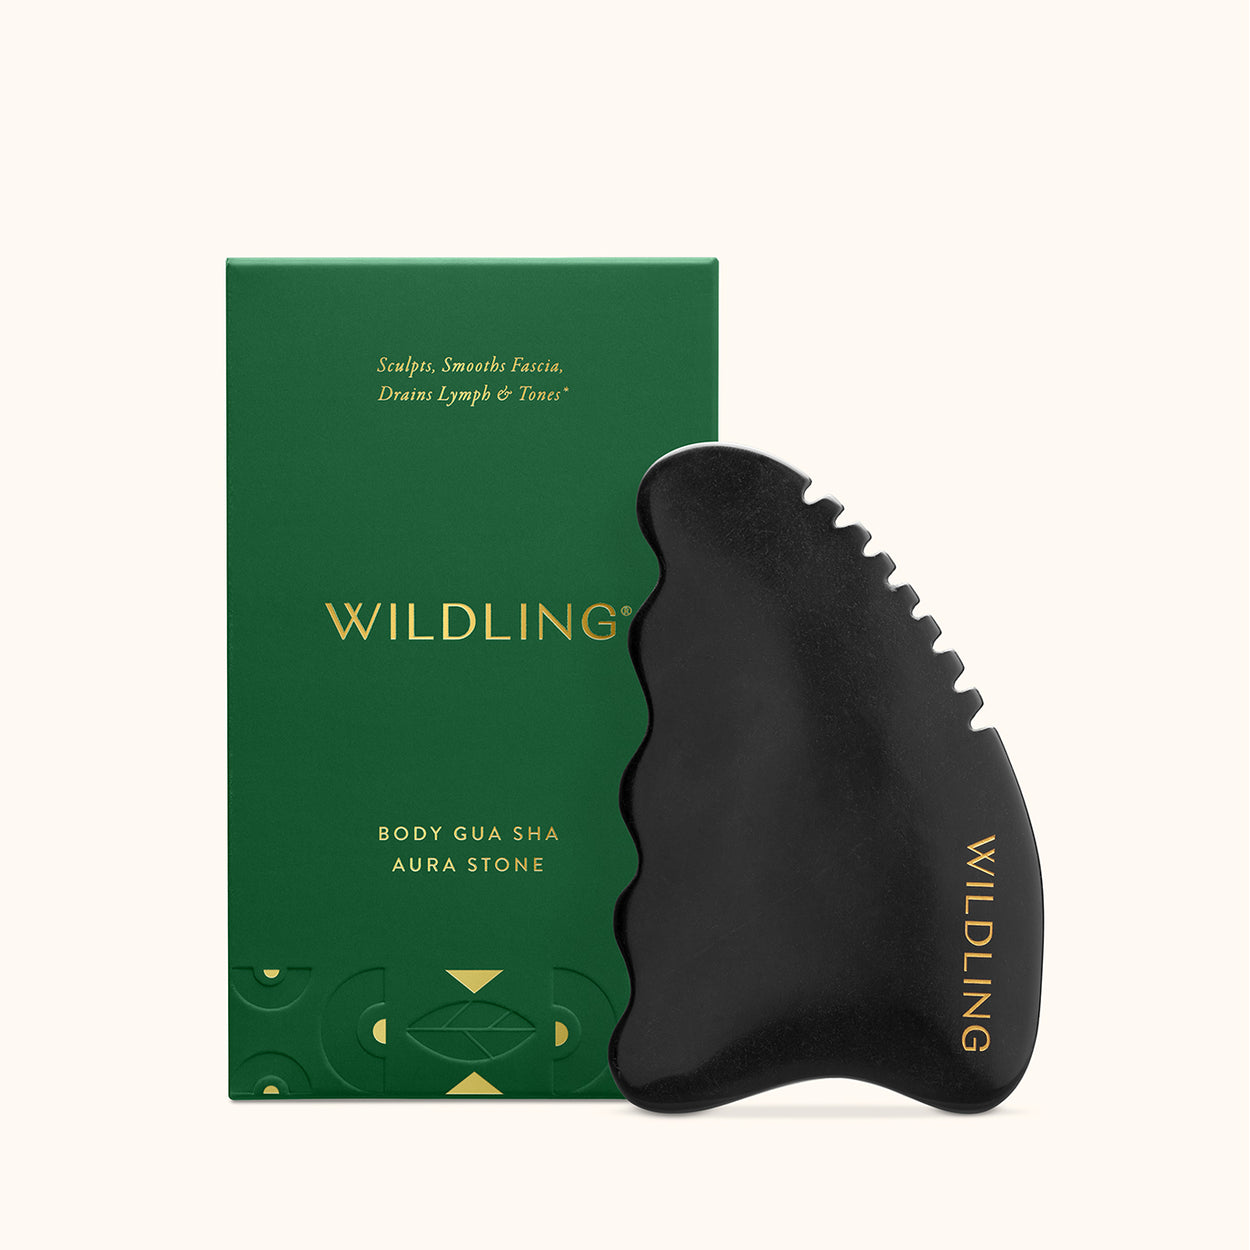 WLD-2106 Wildling Aura Stone for Body Gua Sha with box